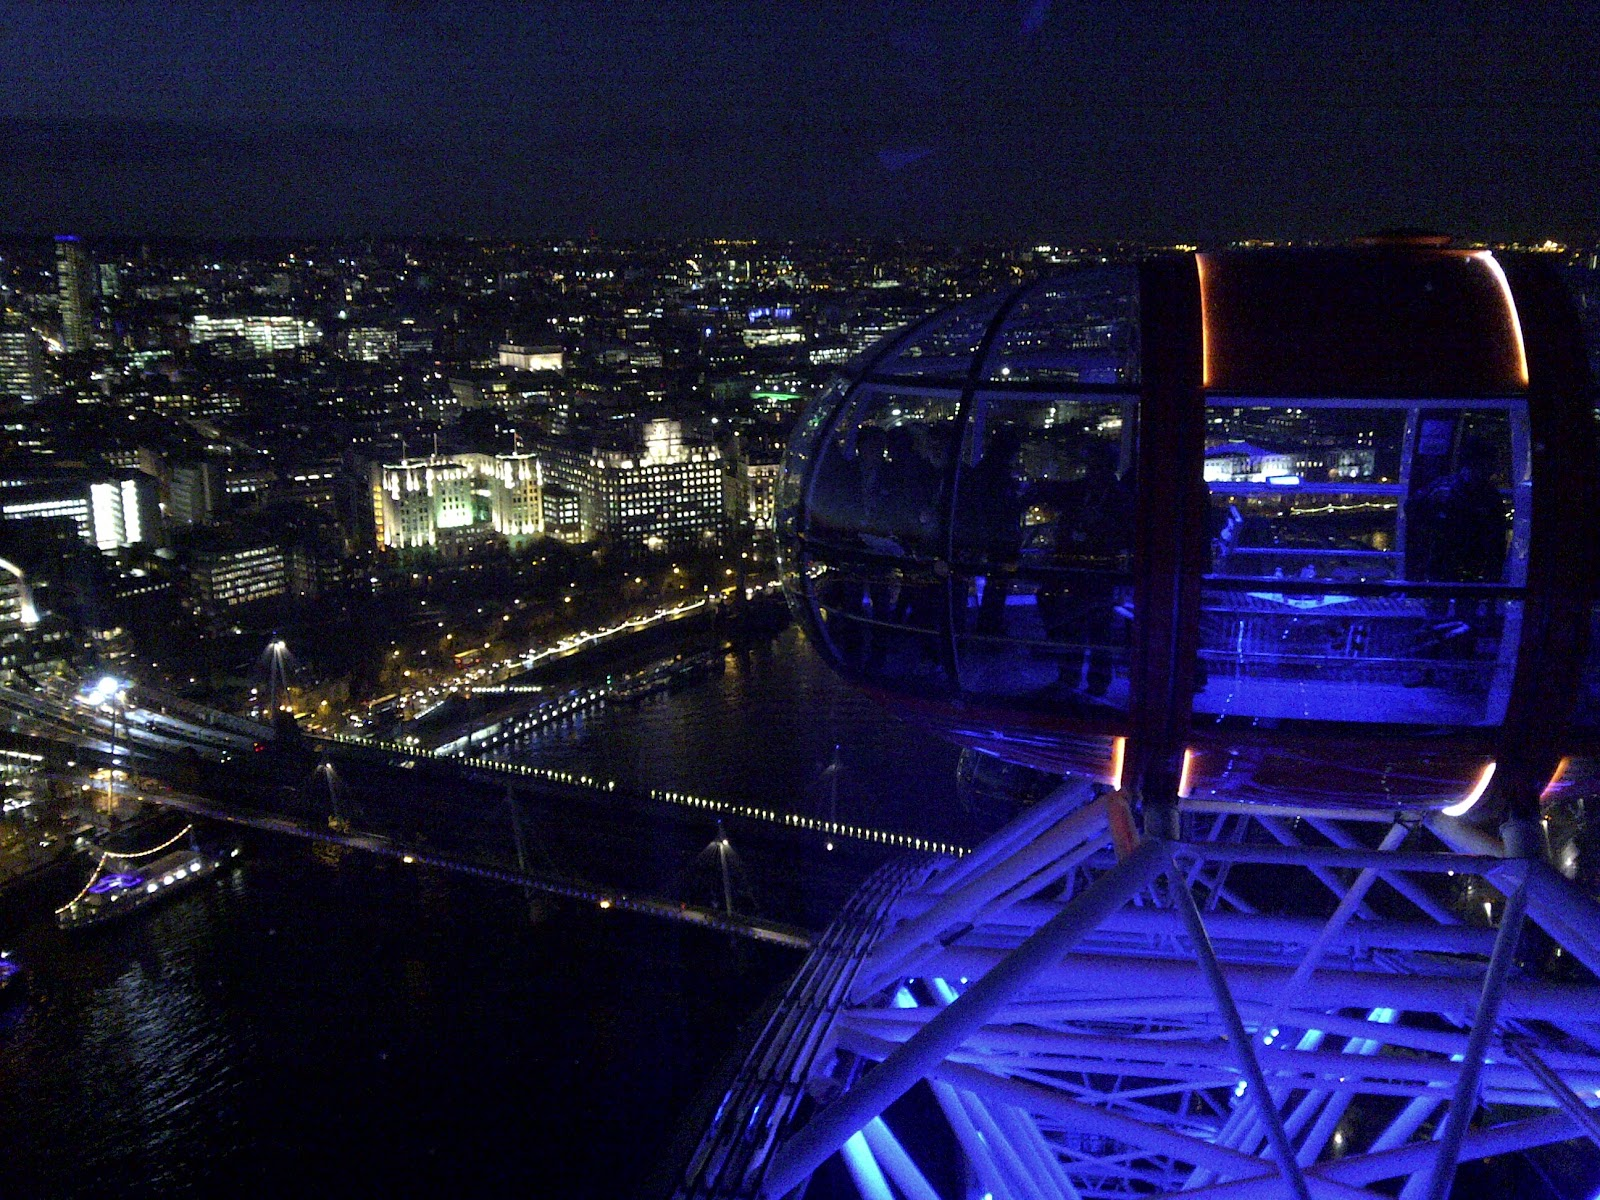 Spectacular views from the London Eye